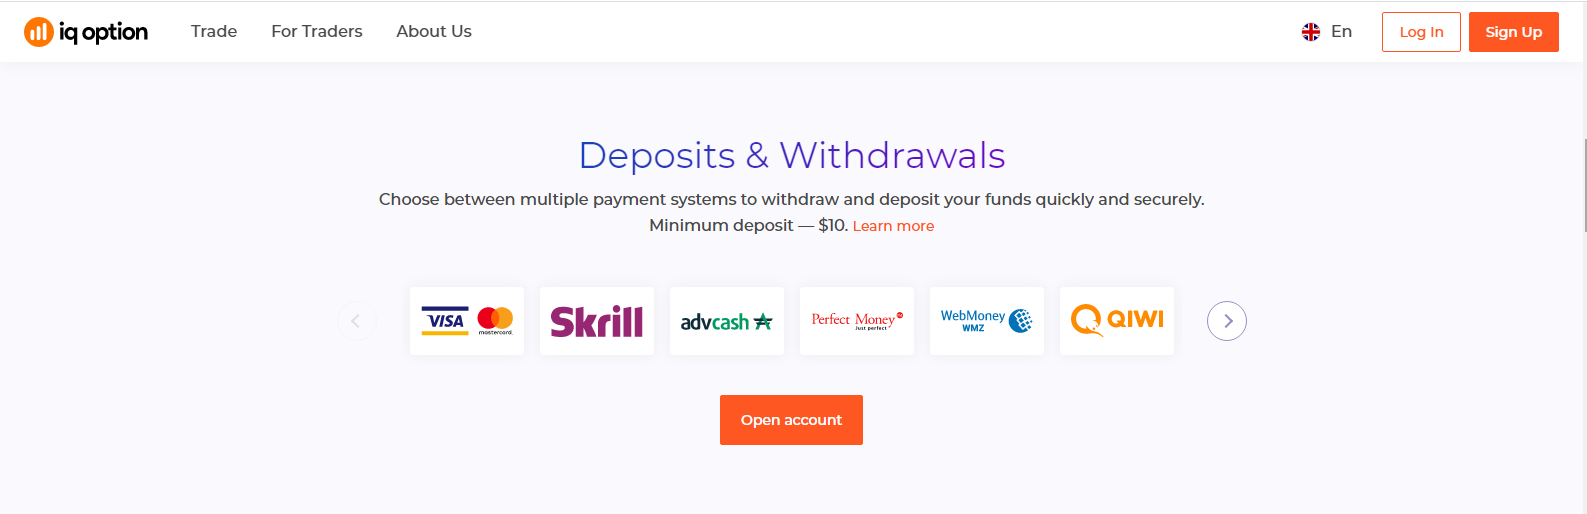 IQ Option Reviews – Deposits and Withdrawals